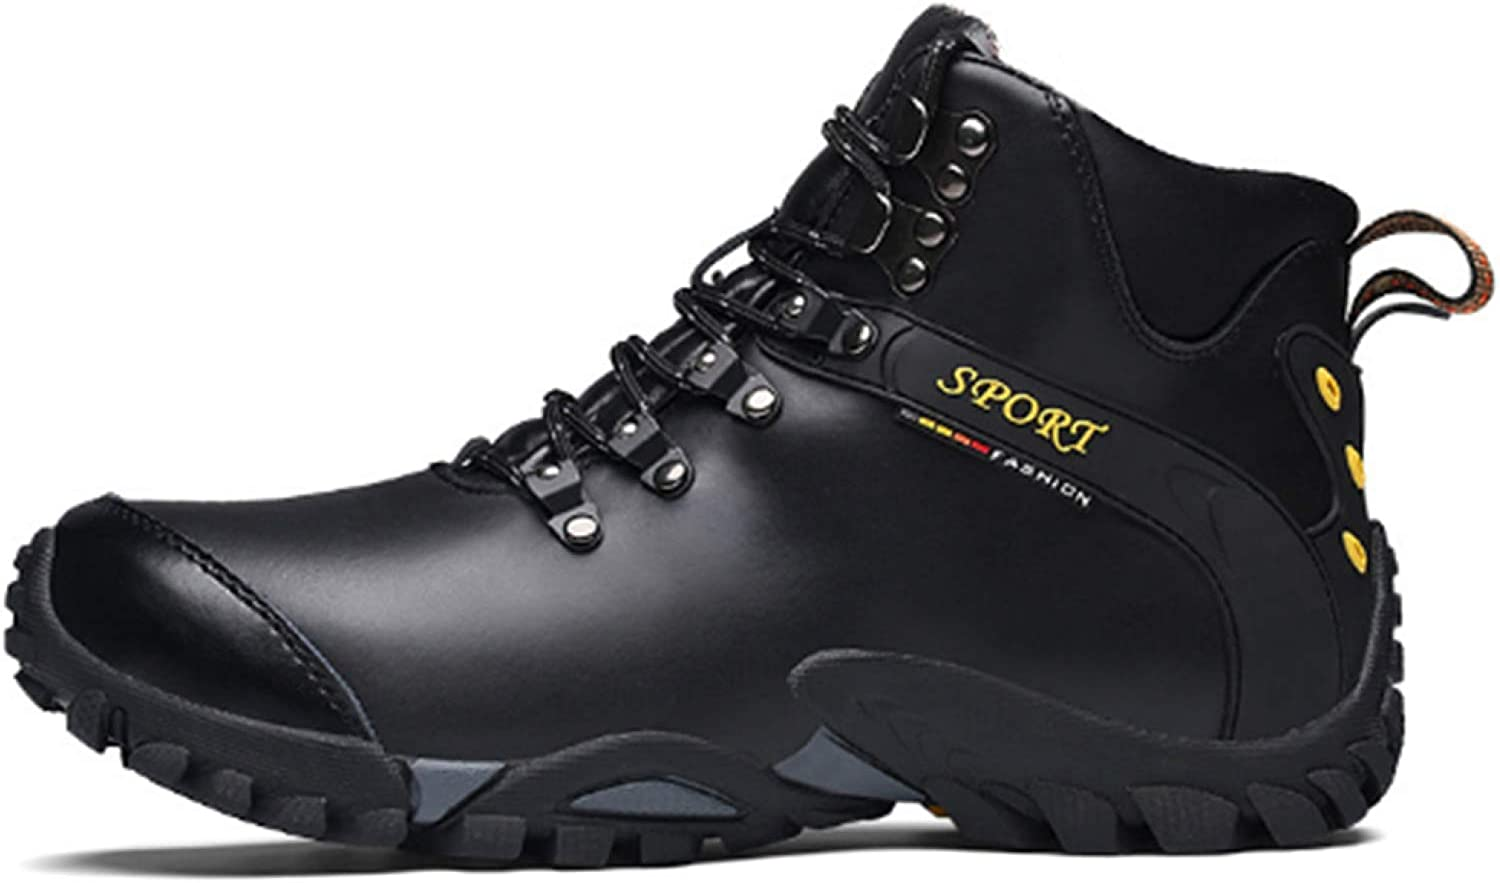 Men's Casual Hiking shoes Outdoor Warm Lining Snow Boots Non-slip Sneakers